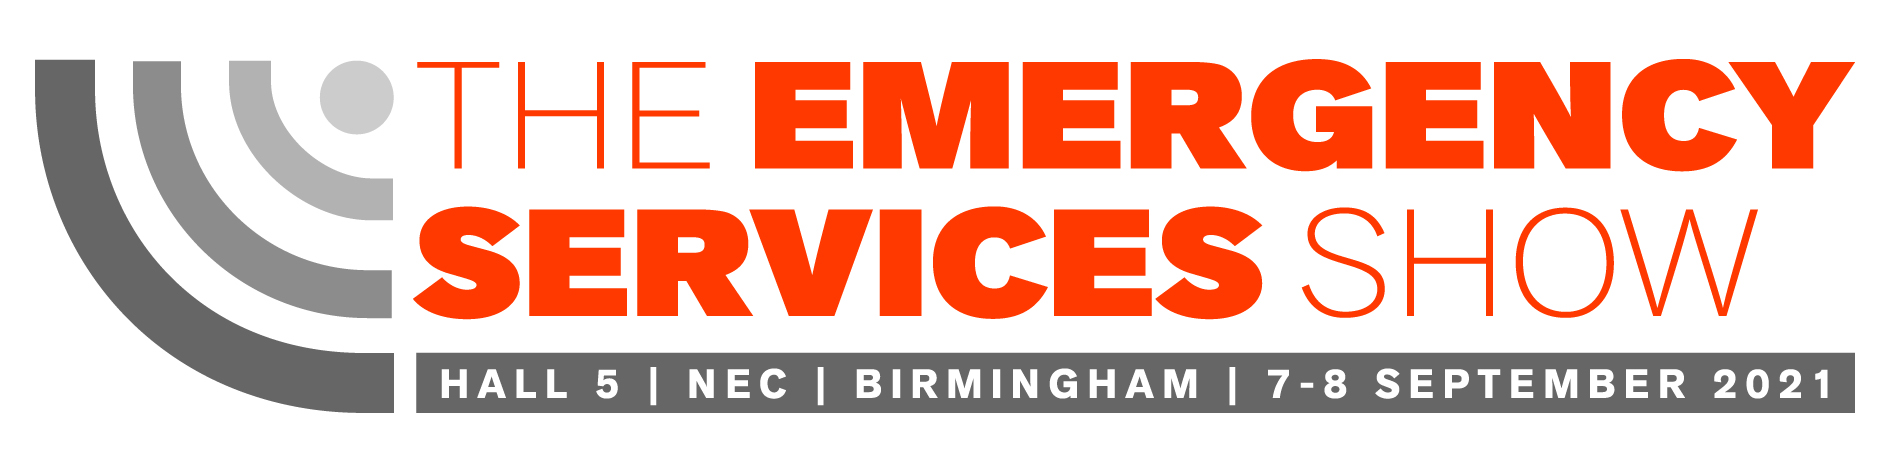 The Emergency Services Show (ESS)